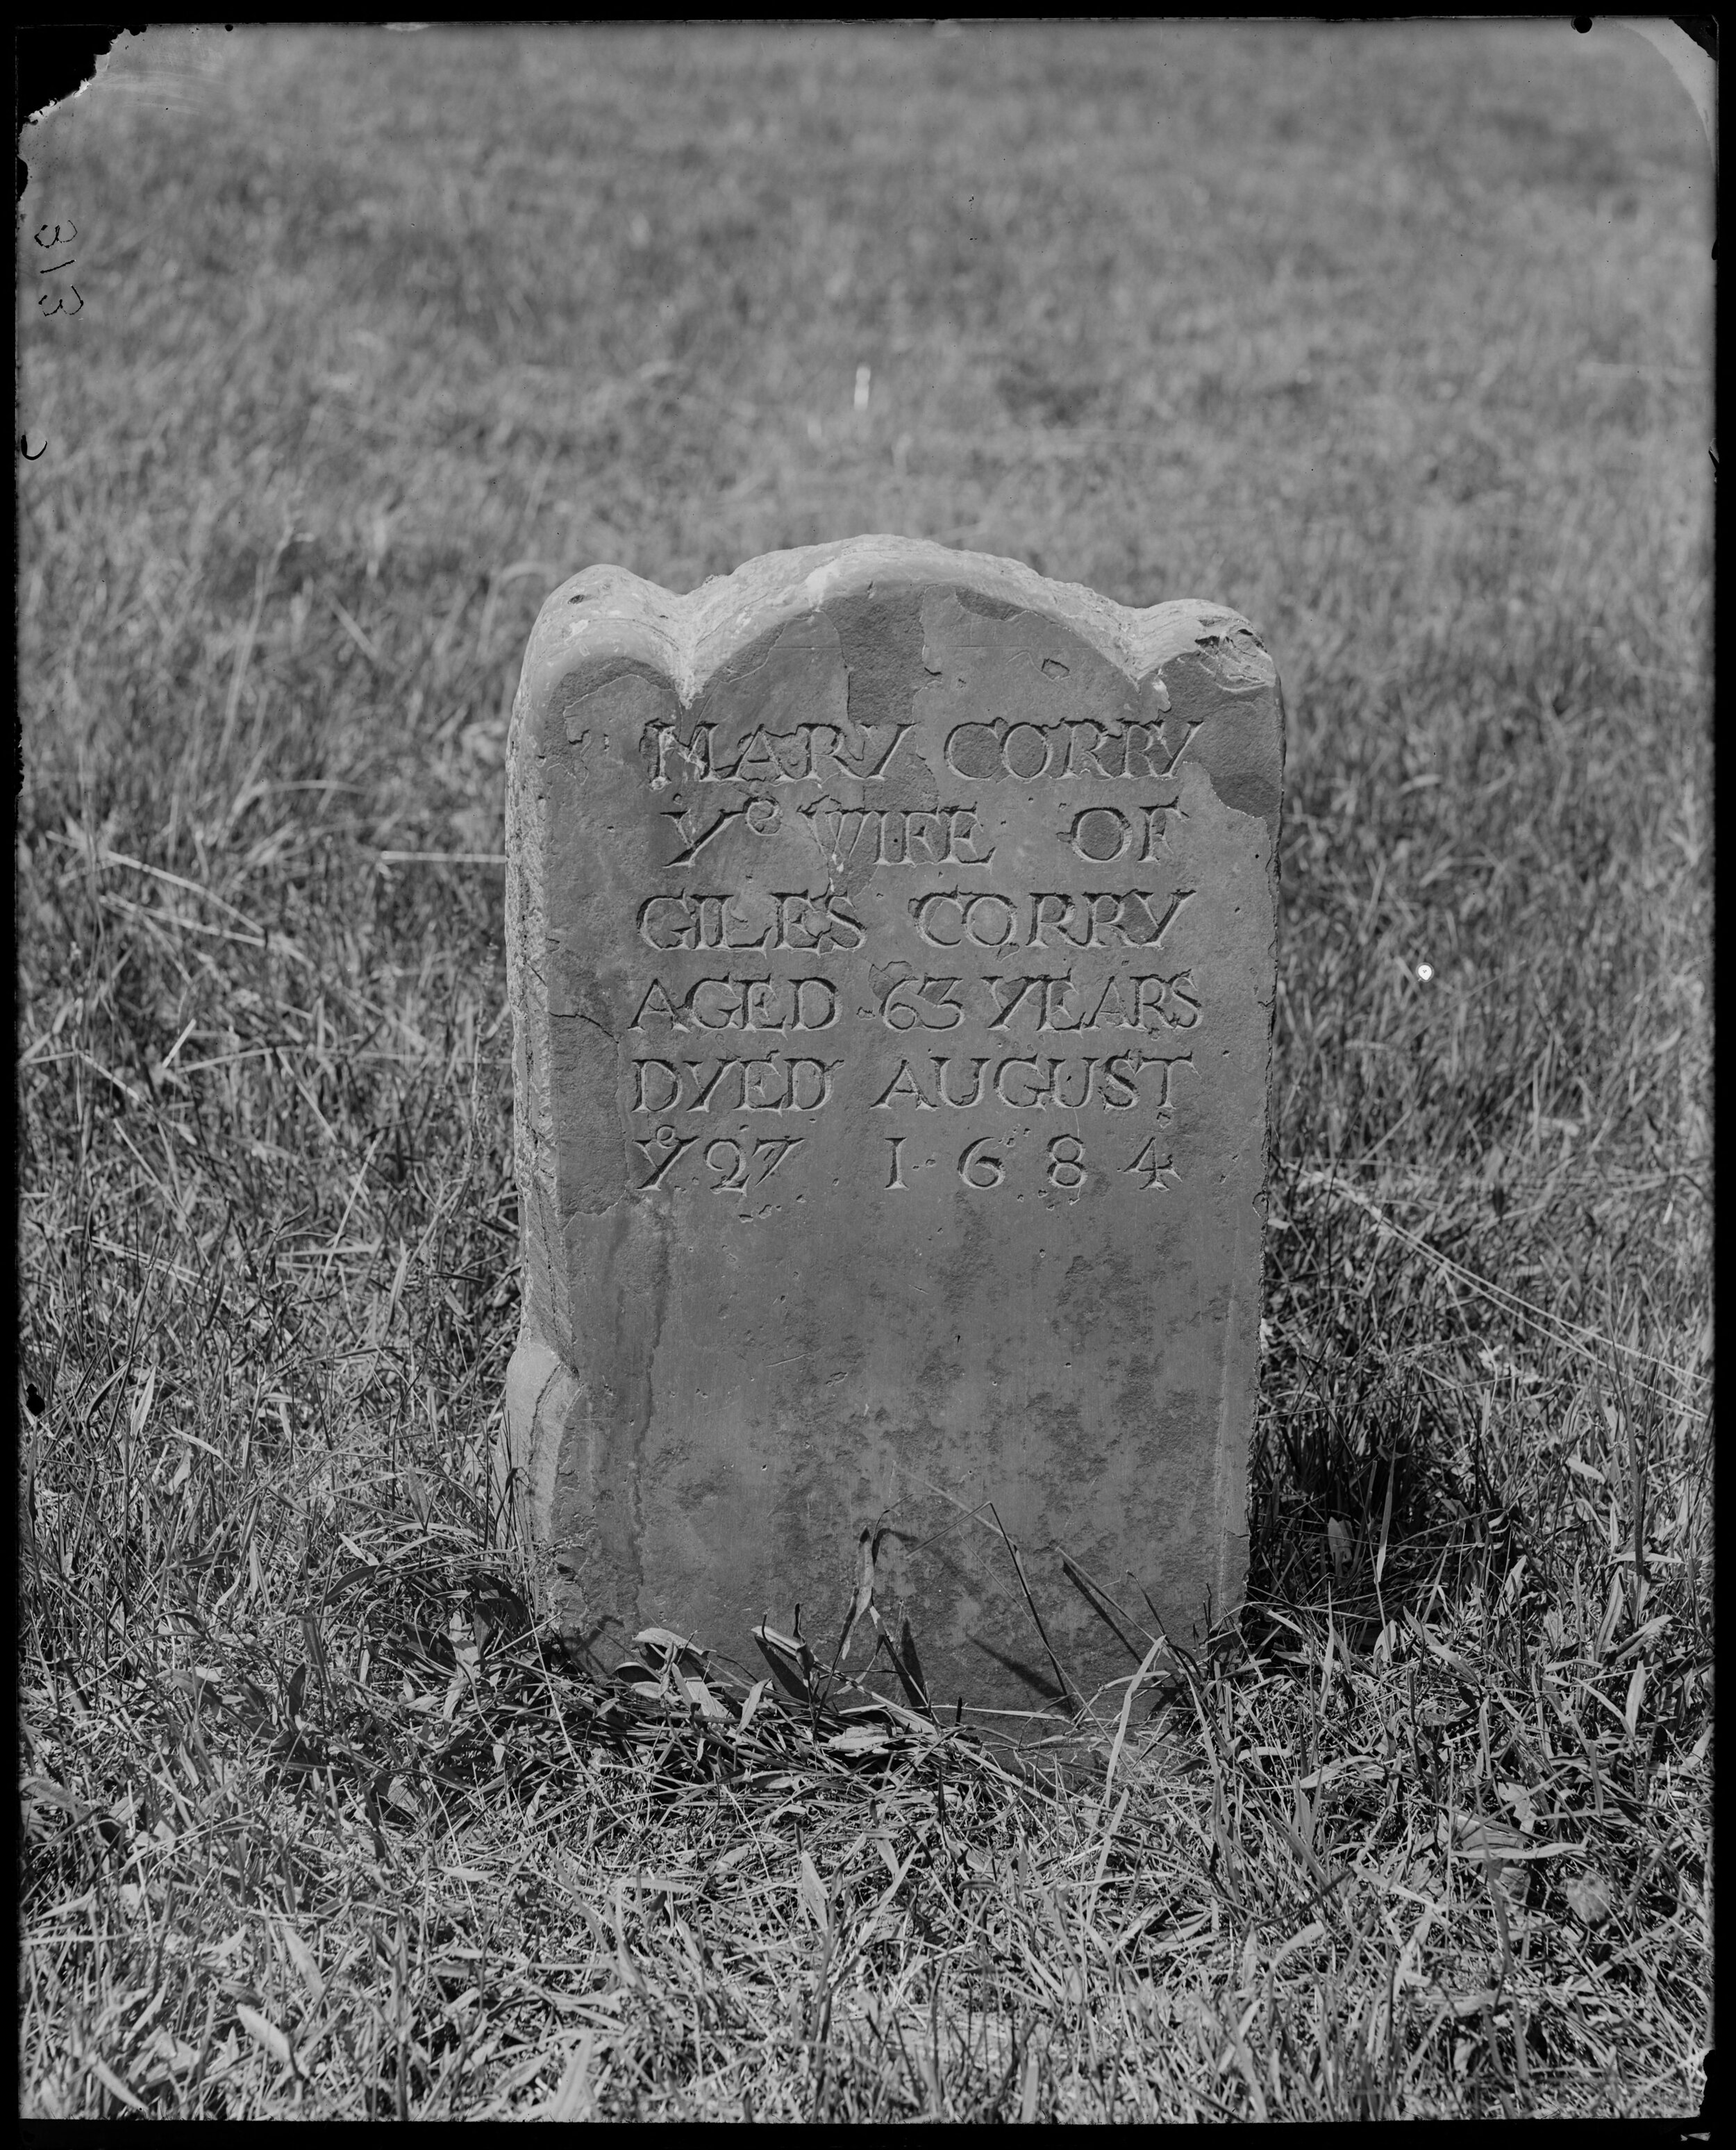 """MARY COREY, WIFE OF GILES COREY   Mary Corry (Corey) was the first wife of Giles Corey, who was accused of witchcraft during the Salem Witch Trials of 1692 and was executed by """"pressing"""". Mary died in 1684, eight years before the Witch Trials.   Frank Cousins, [Monuments, Mary Corey, aged 63, September 27, 1684, Salem, Charter Street Cemetery) , [1864-1914], Frank Cousins Collection of Glass Plate Negatives, Courtesy of Phillips Library, Peabody Essex Museum, Salem, MA."""